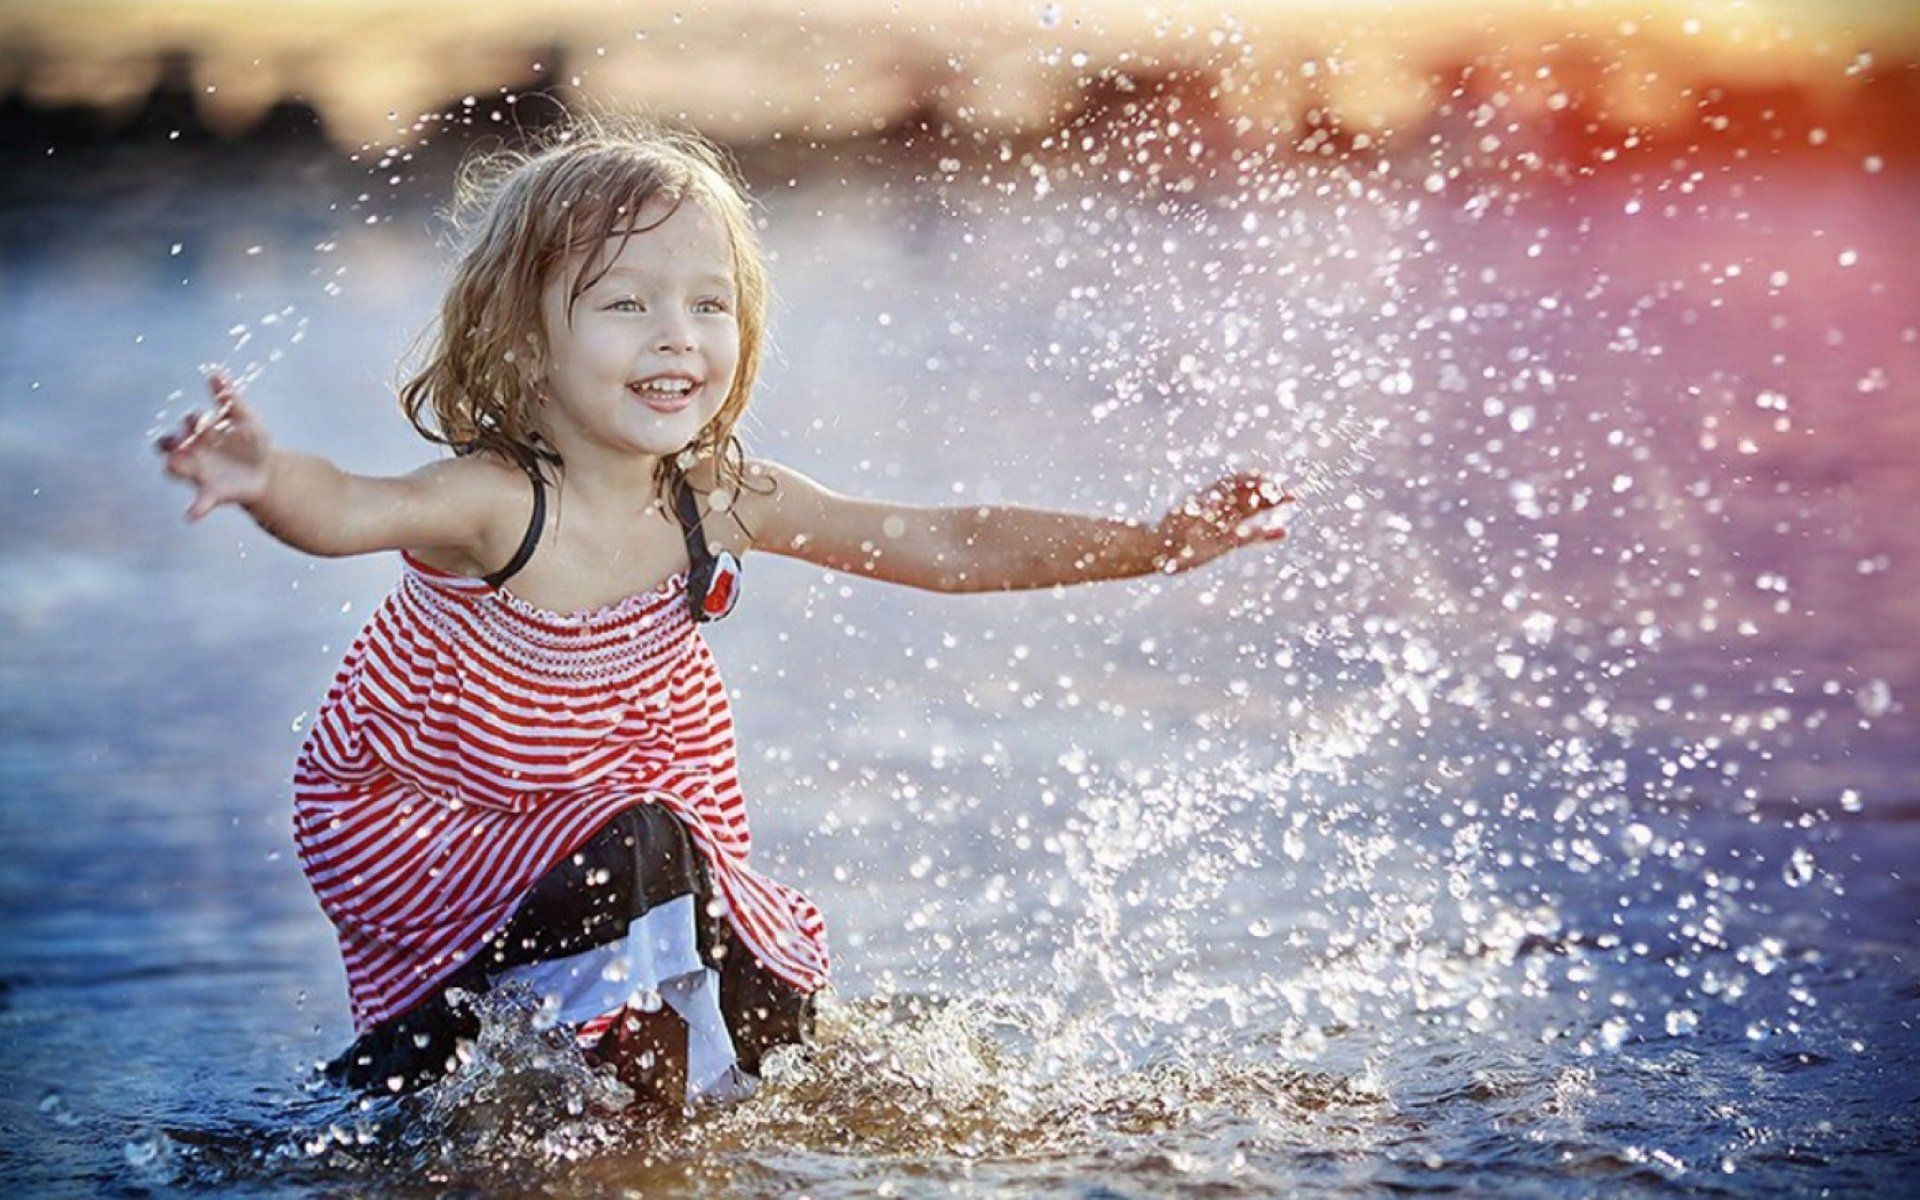 1920x1200 cute baby girl wallpapers for mobile #810193